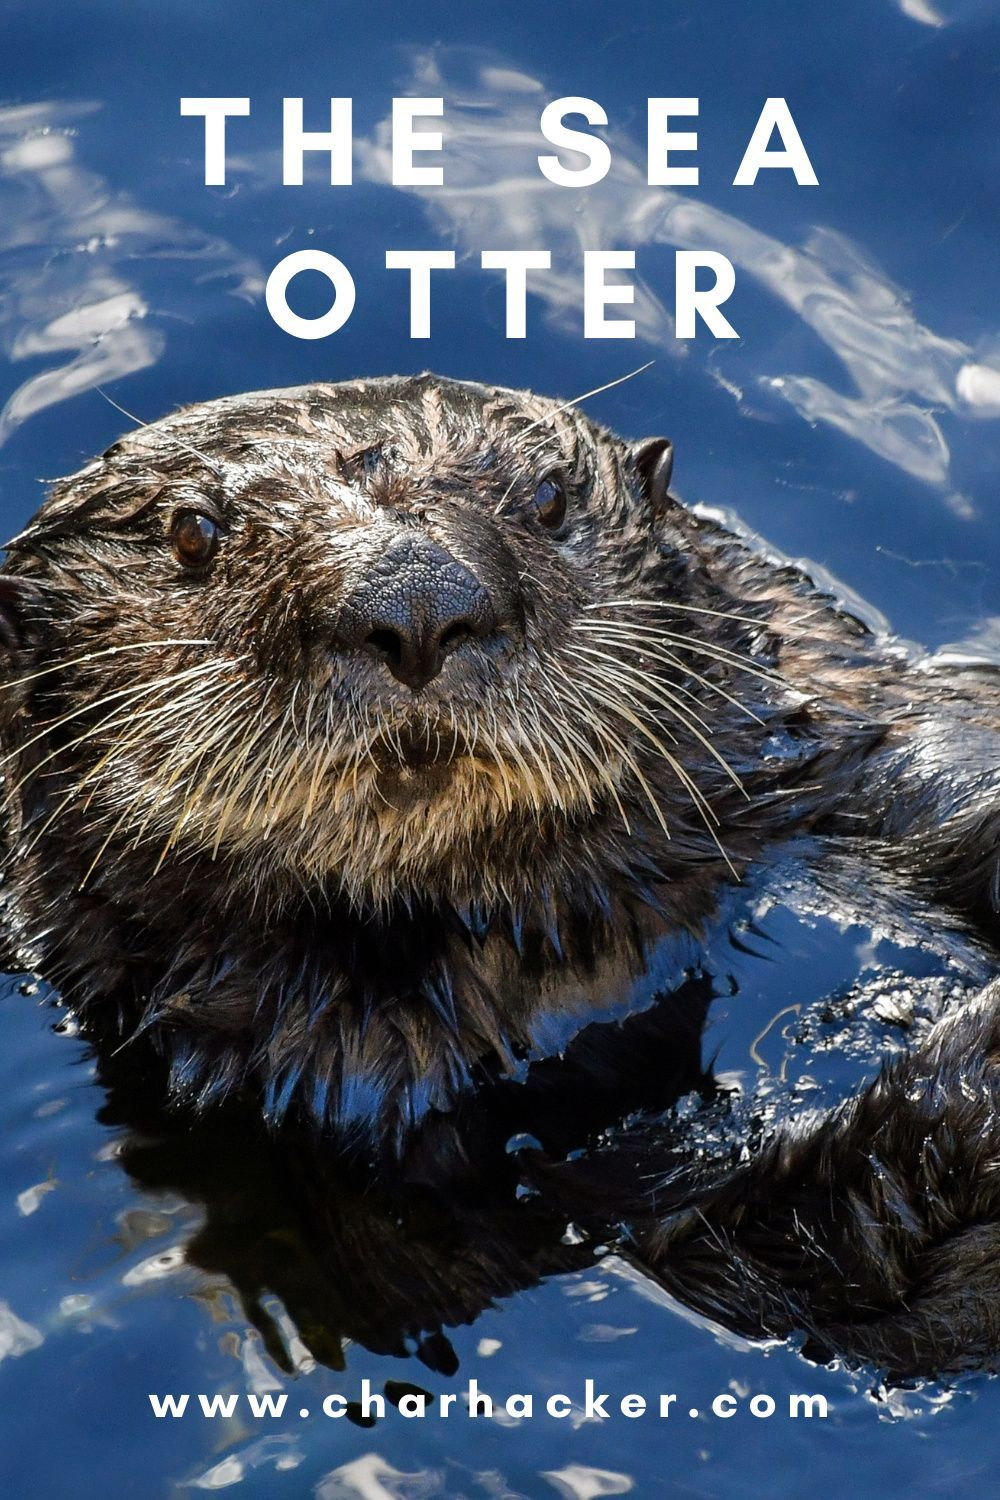 The sea otter is a marine mammal known for some of its amazing features - like having the thickest fur in the animal kingdom! Click to learn more facts in three minutes or less.    #conservation #marinelife #marinemammals #mammals #ocean  #endangered #species #wildlife